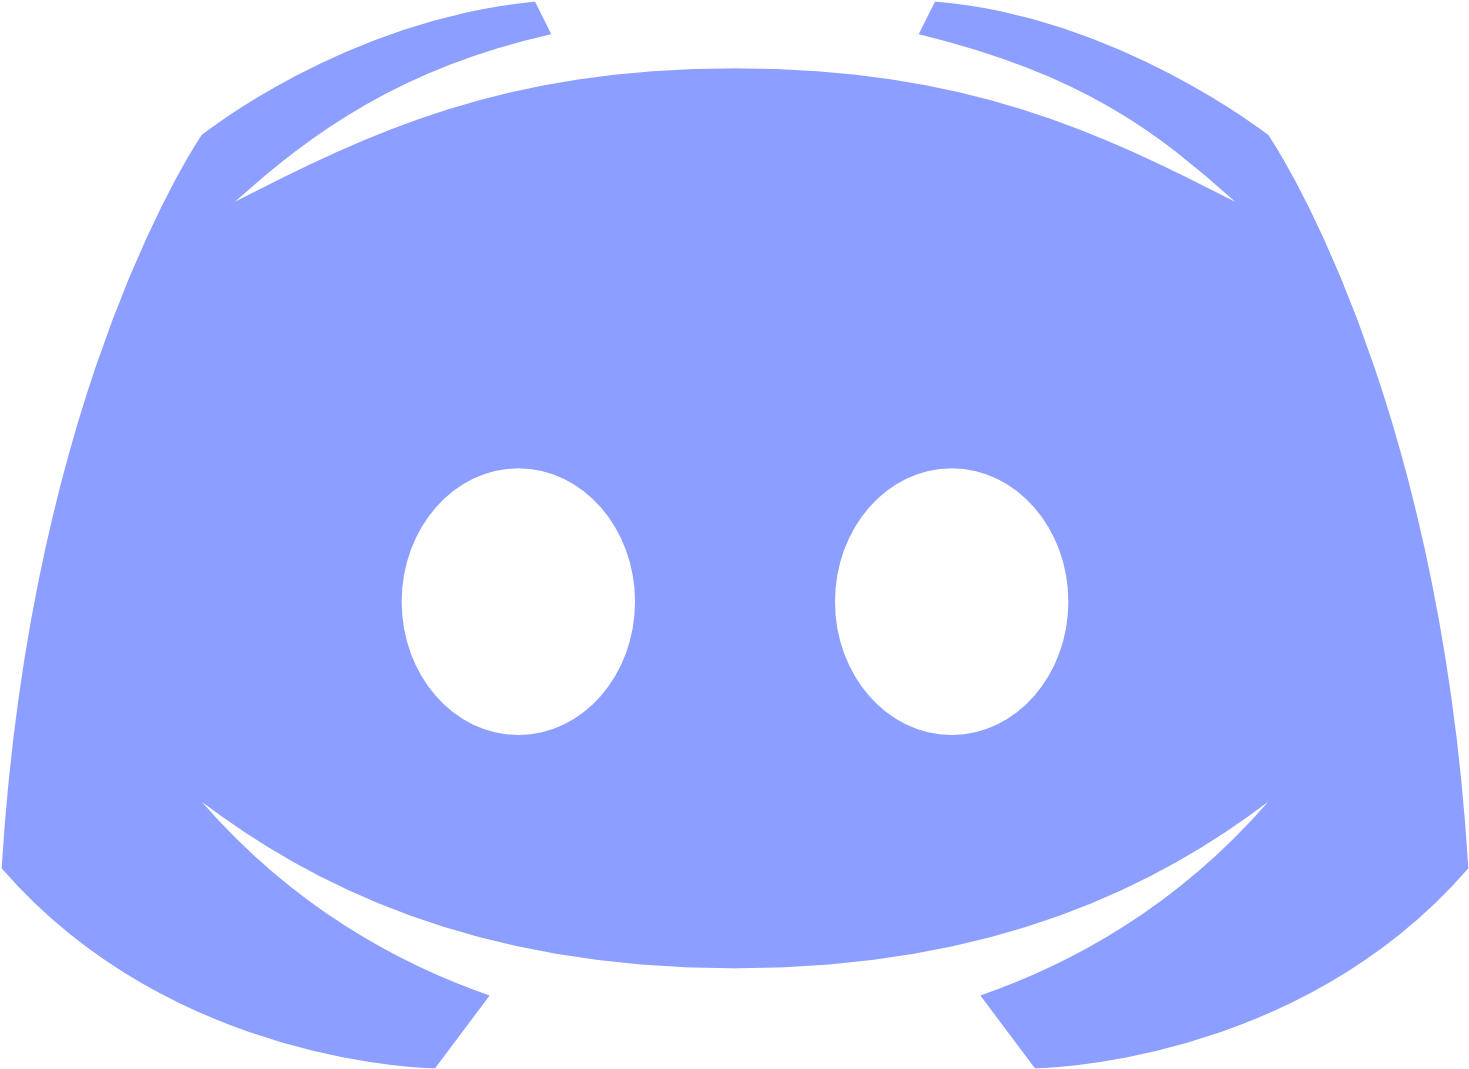 [Image: 17-179750_discord-icon-discord-logo.png]